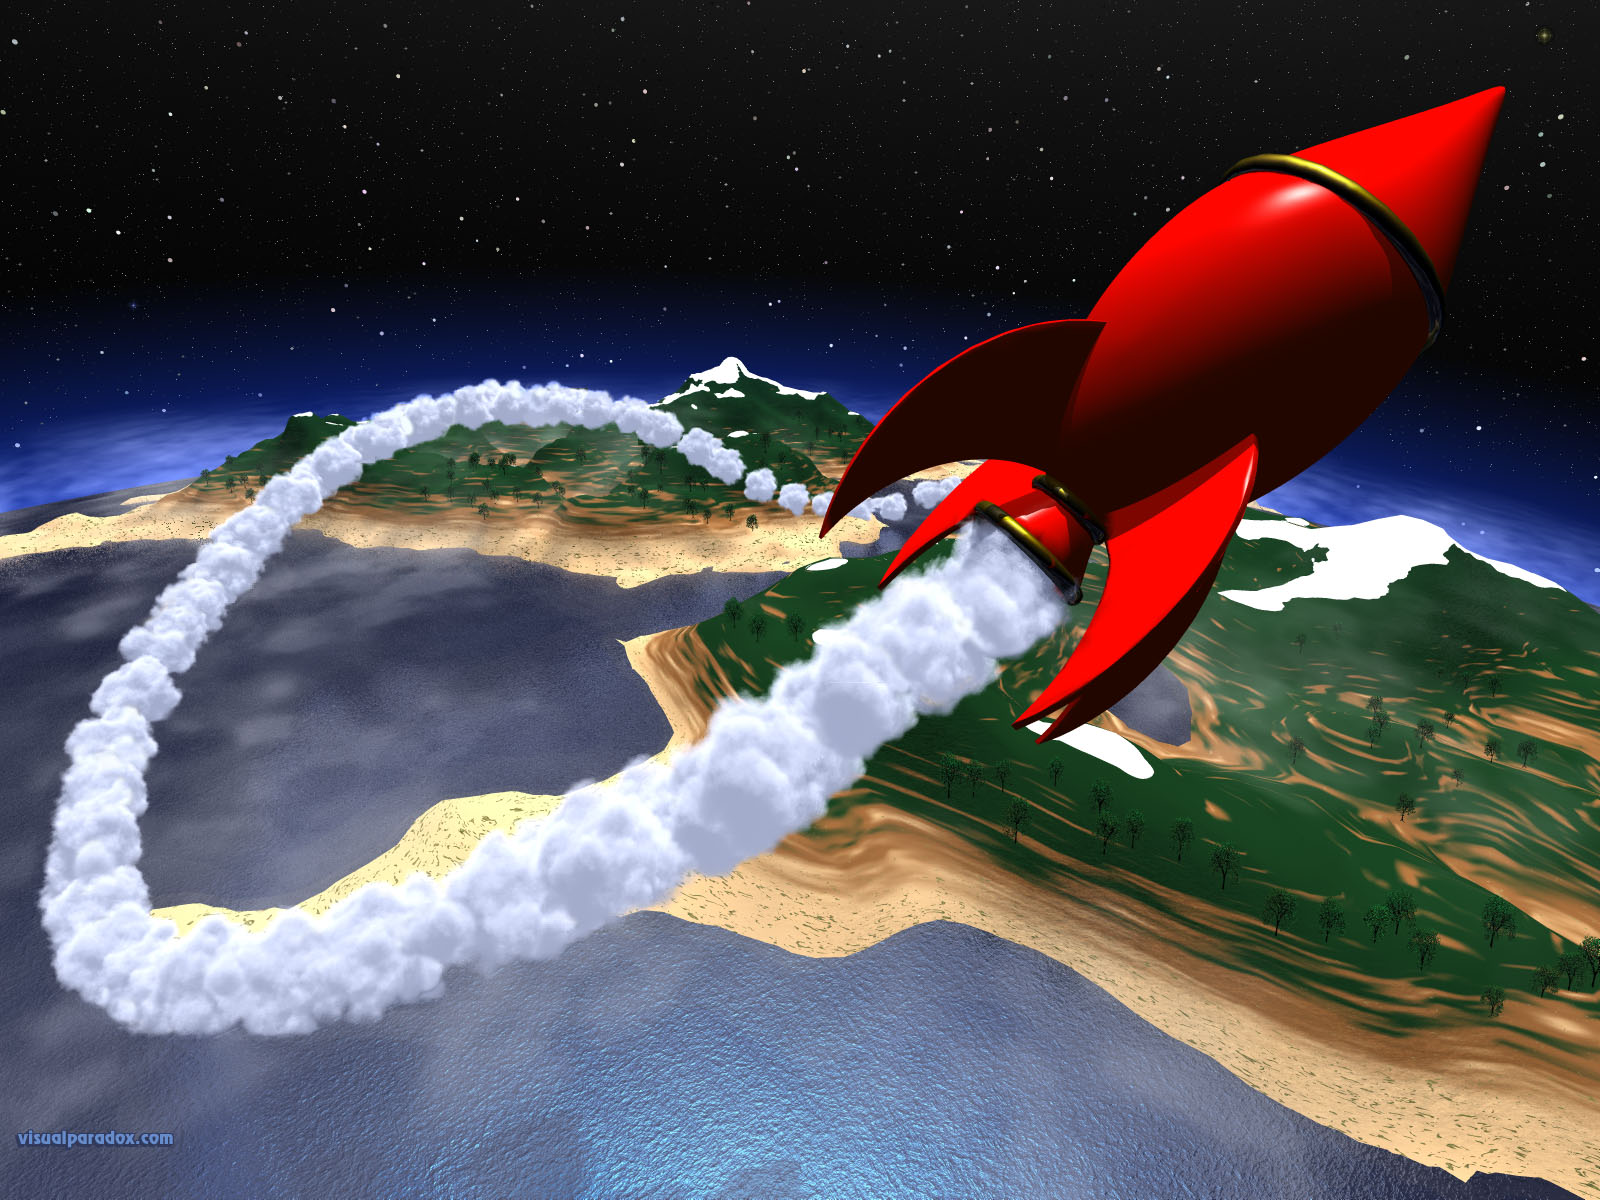 Free 3d wallpaper 39 moon or bust 39 1600x1200 for Space blast 3d